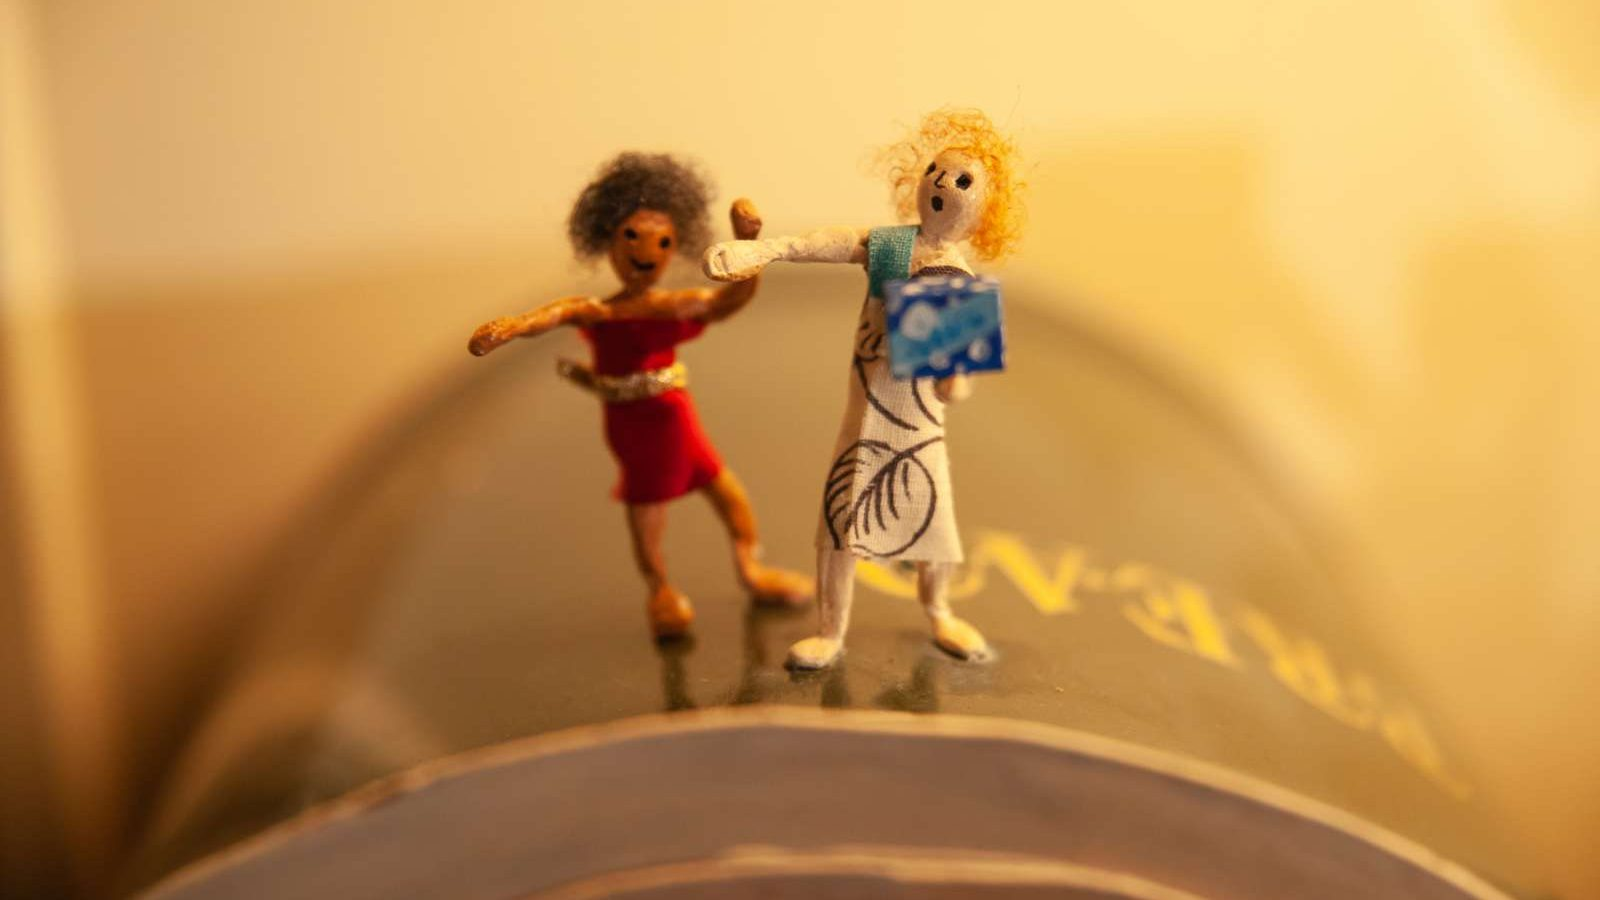 Close up of two miniature doll figures